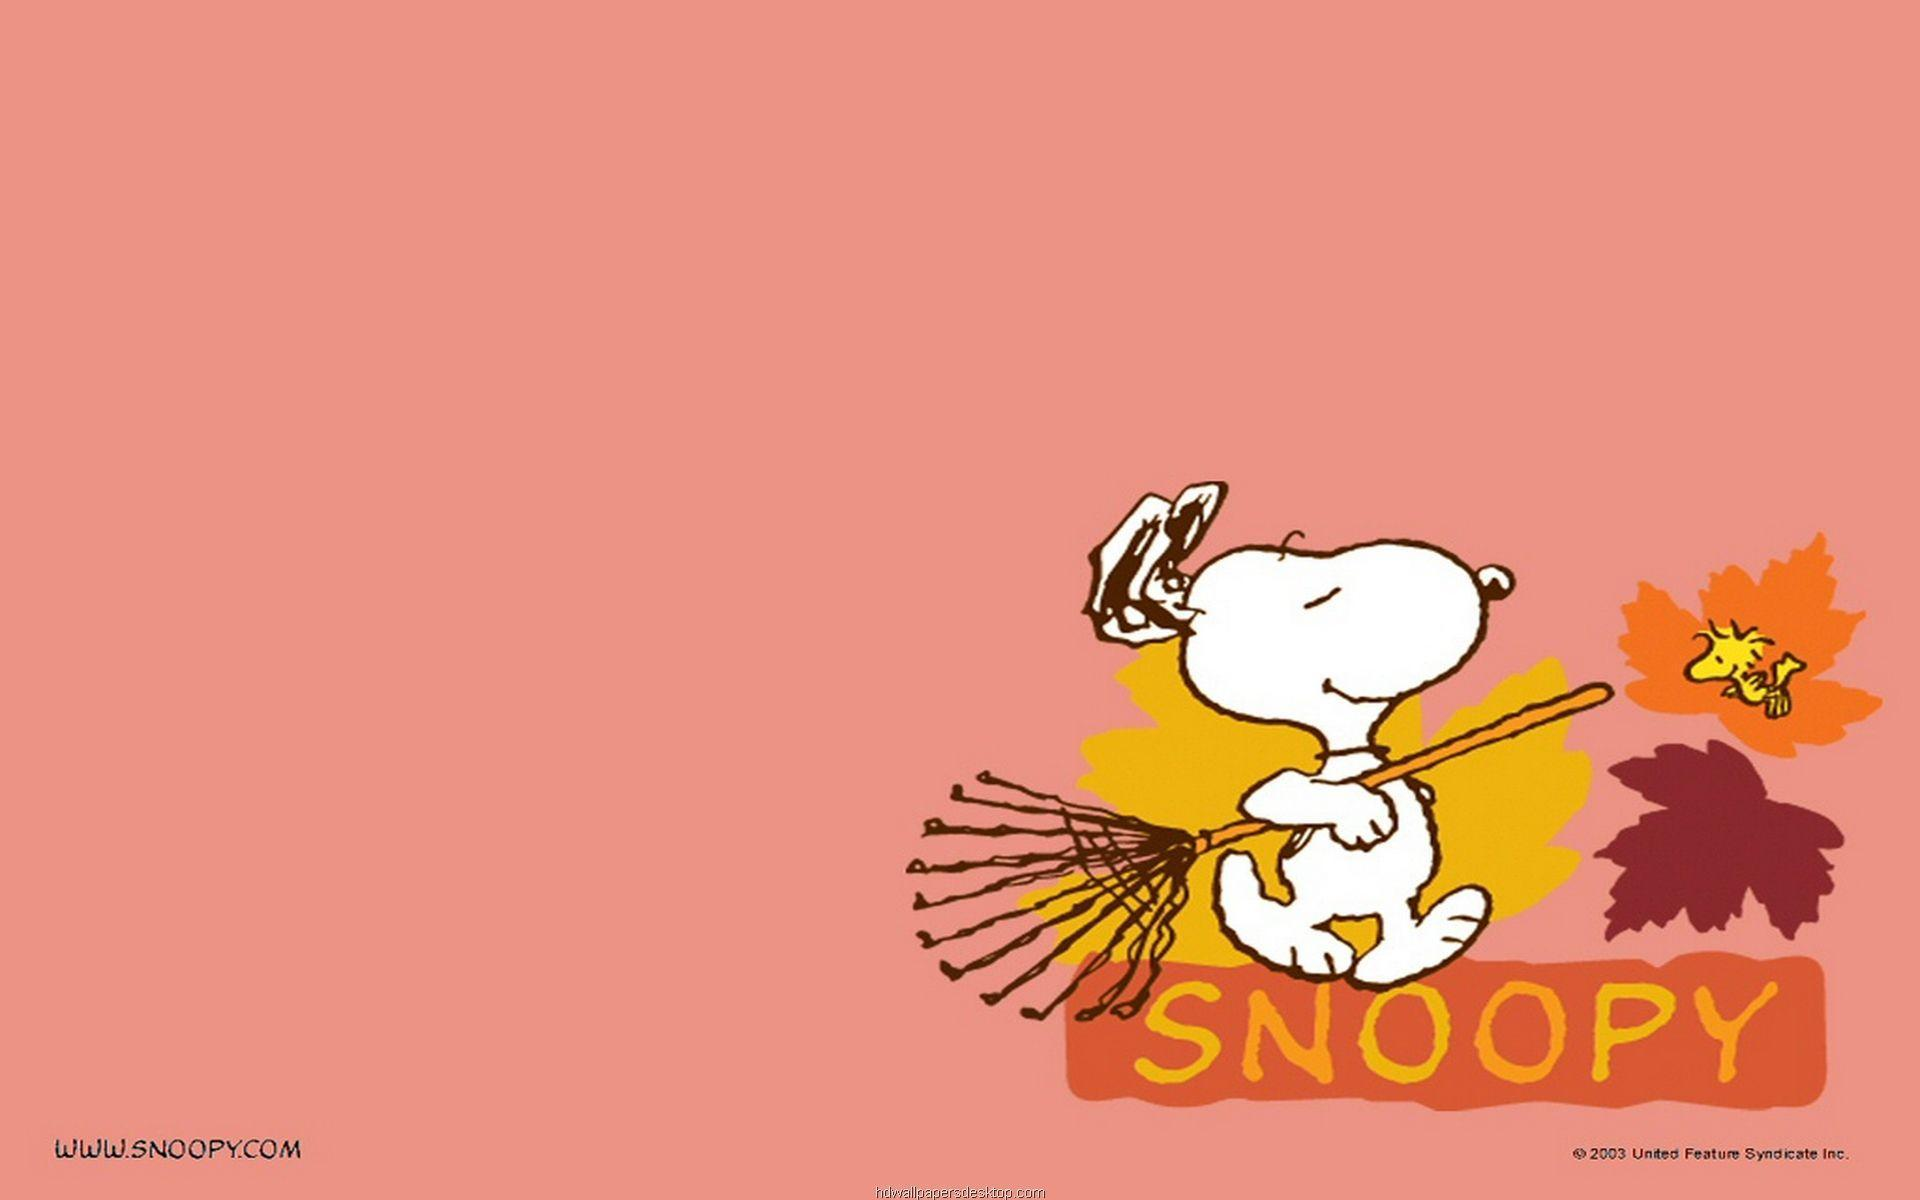 Snoopy Spring Wallpapers Wallpaper Cave HD Wallpapers Download Free Images Wallpaper [1000image.com]